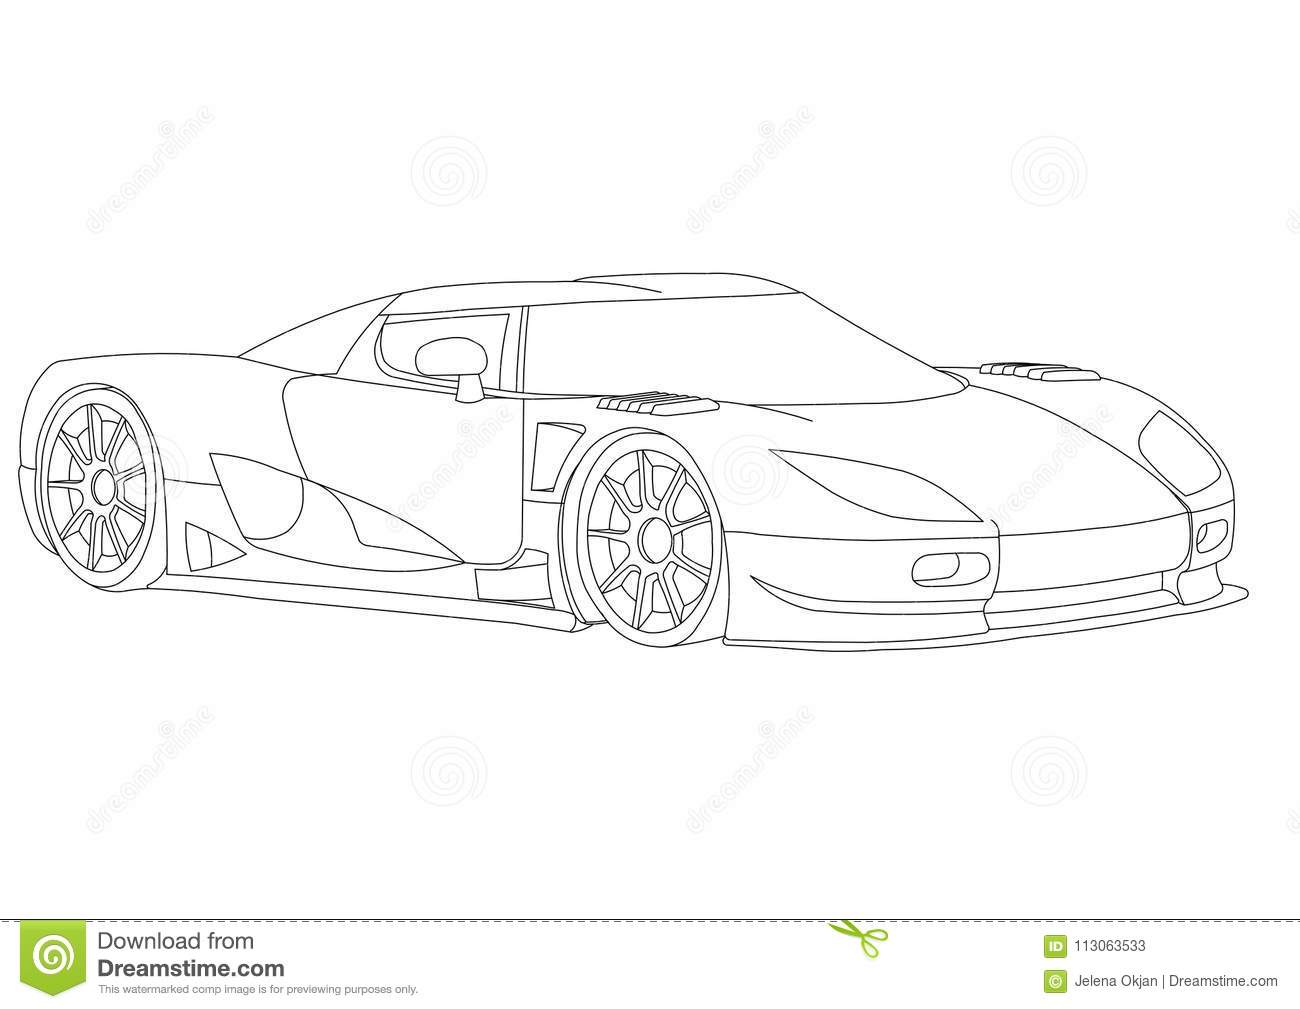 Shoot of the sport car 3d blueprint isolated